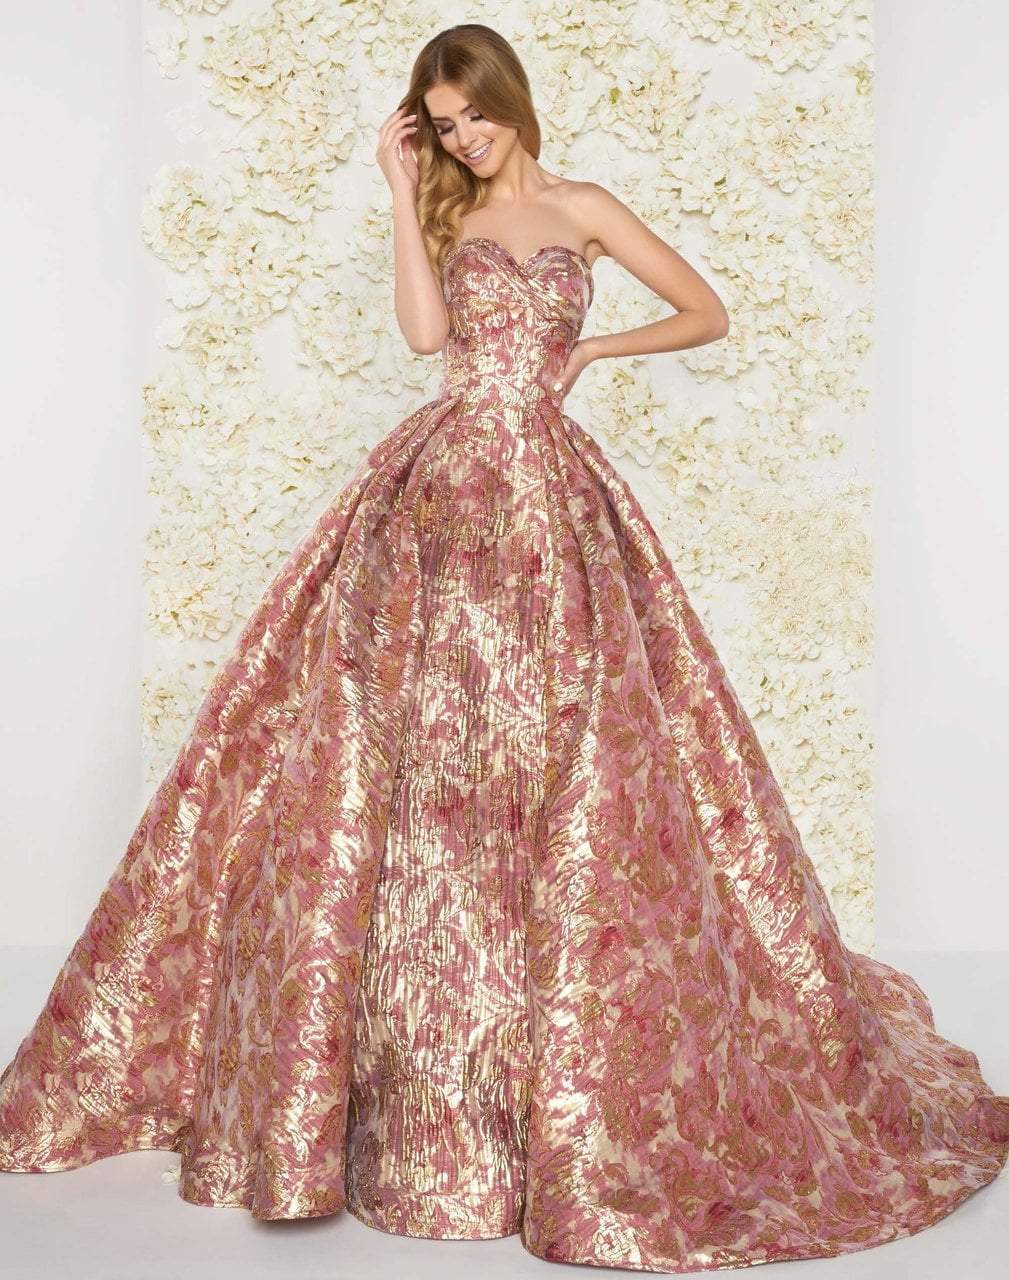 Mac Duggal Couture - 66222D Floral Print Metallic Ballgown in Pink and Gold